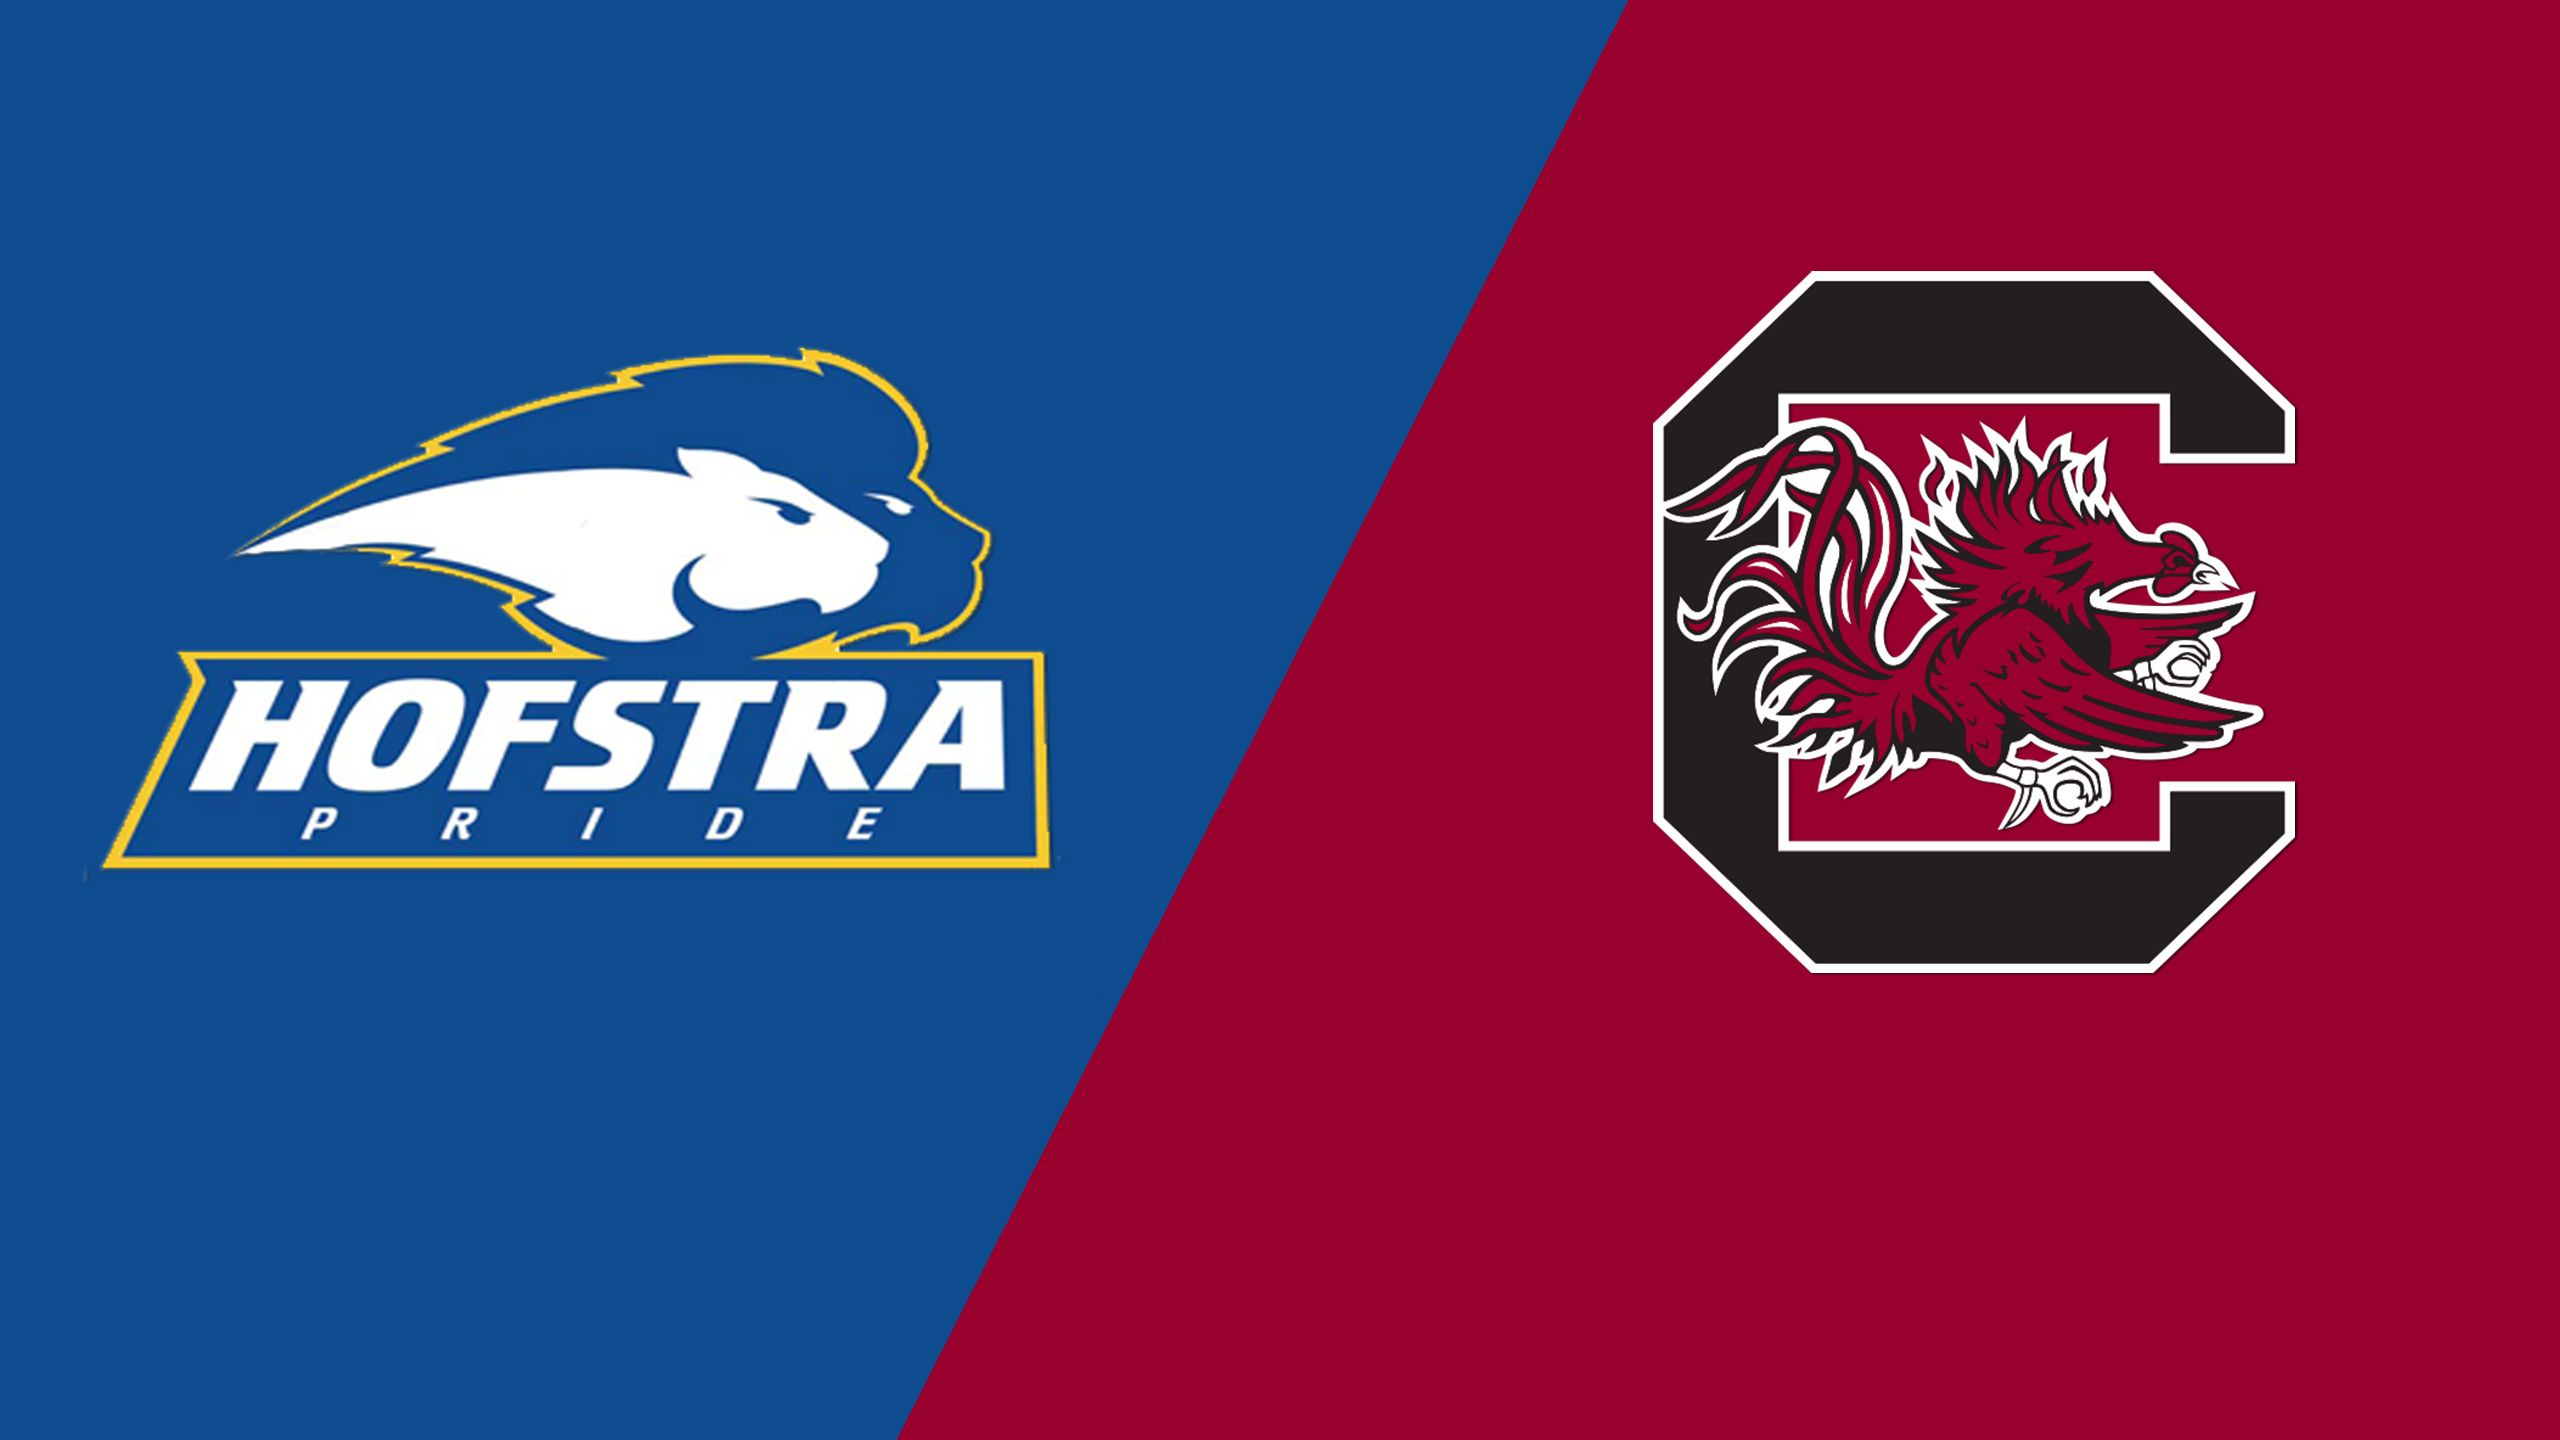 Hofstra vs. #9 South Carolina (Site 10 / Game 5) (NCAA Softball Championship)